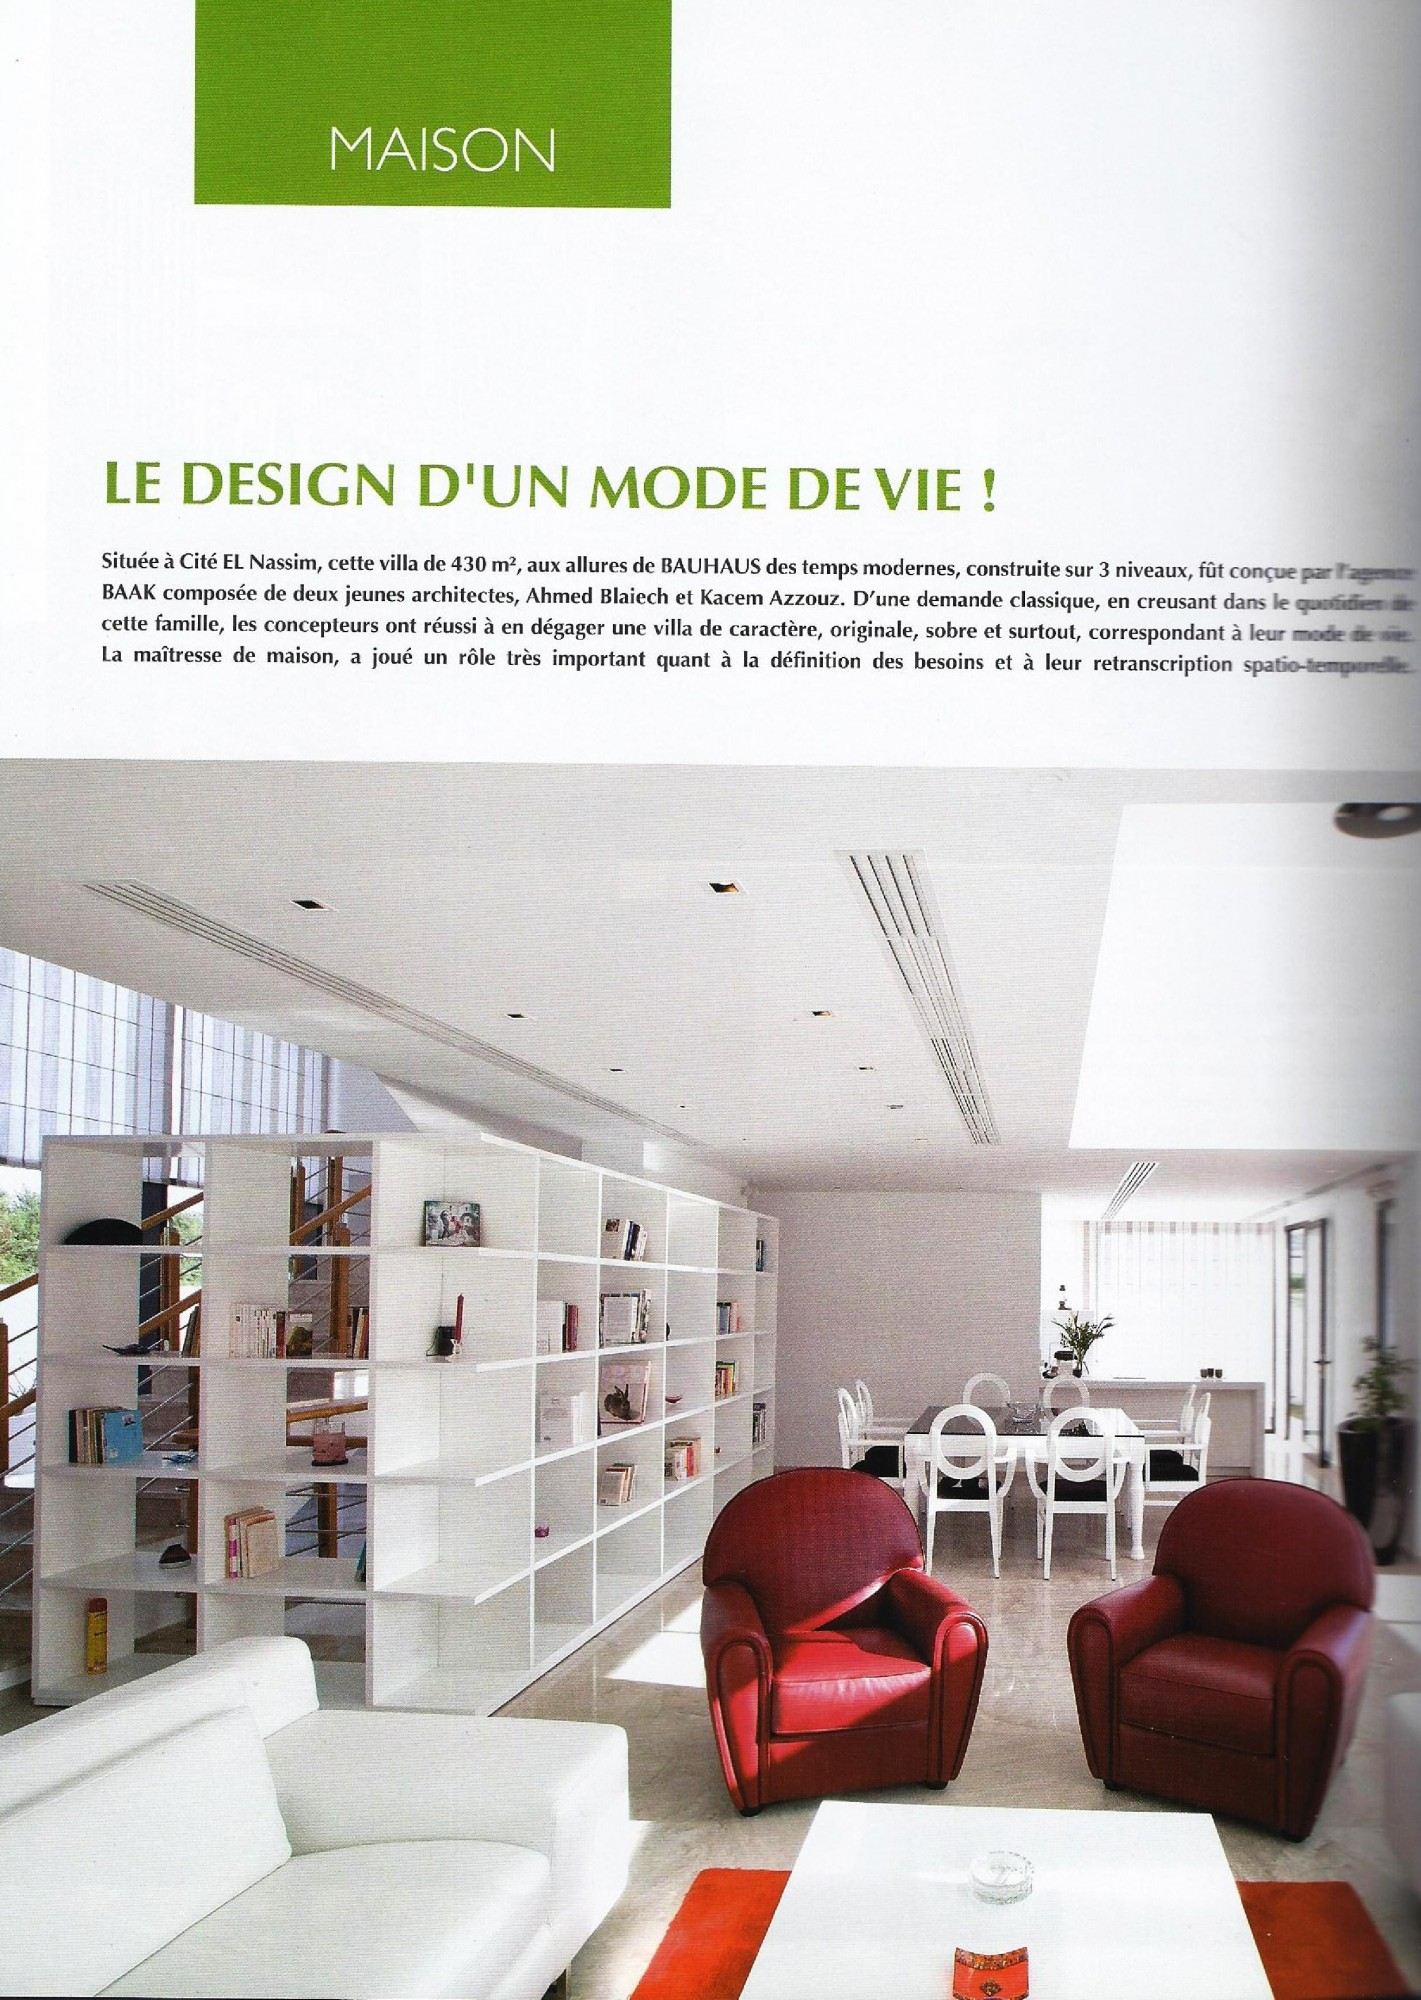 http://www.baakarchitects.com/wp-content/uploads/2015/11/publication-28-page-002-1421x2000.jpg